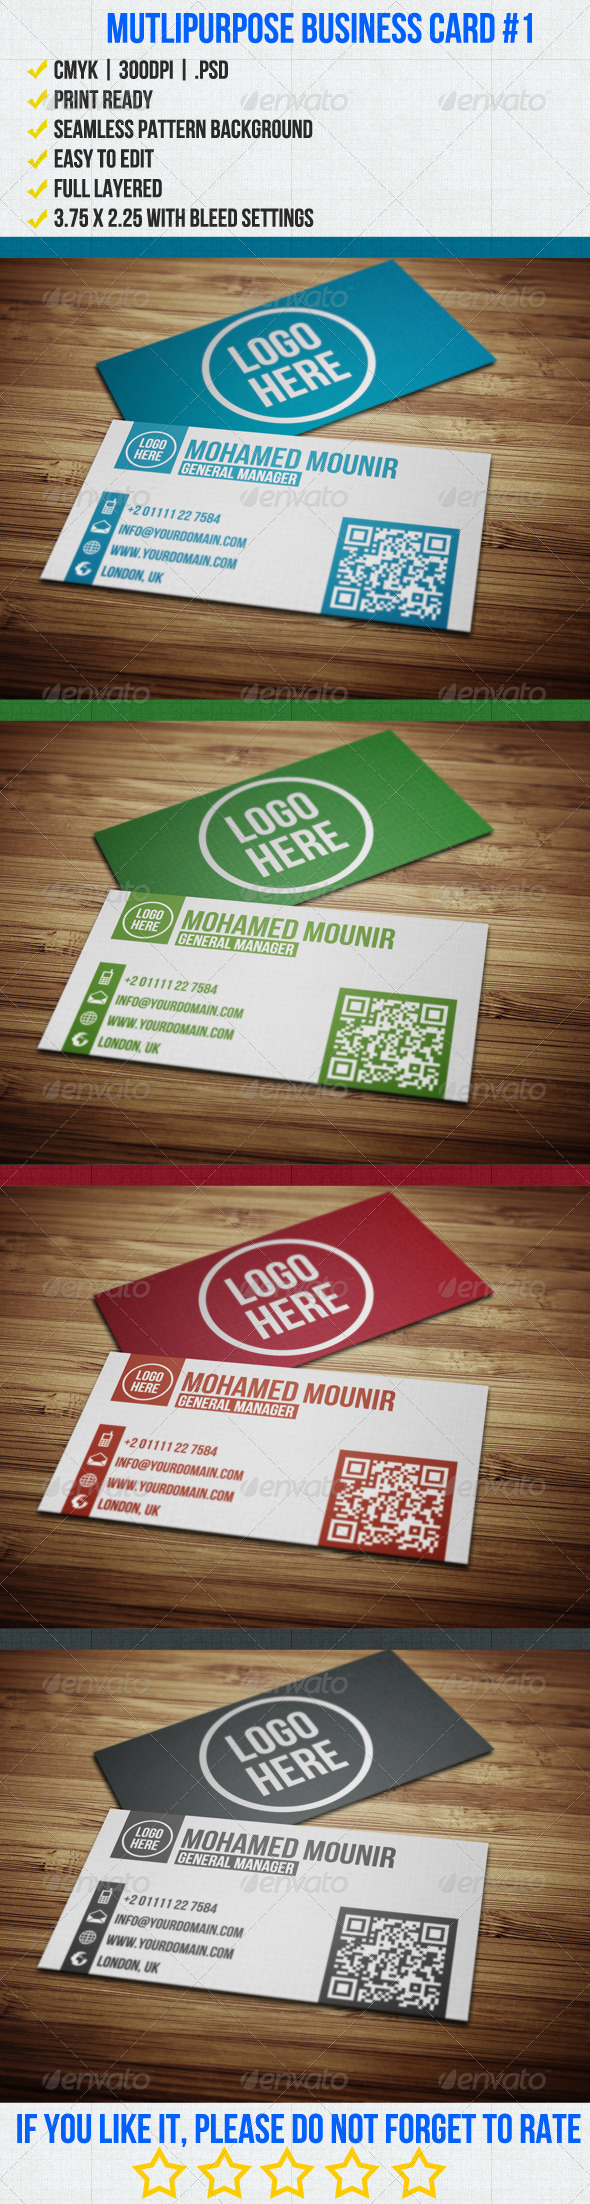 Multipurpose Business Card 1 - Corporate Business Cards